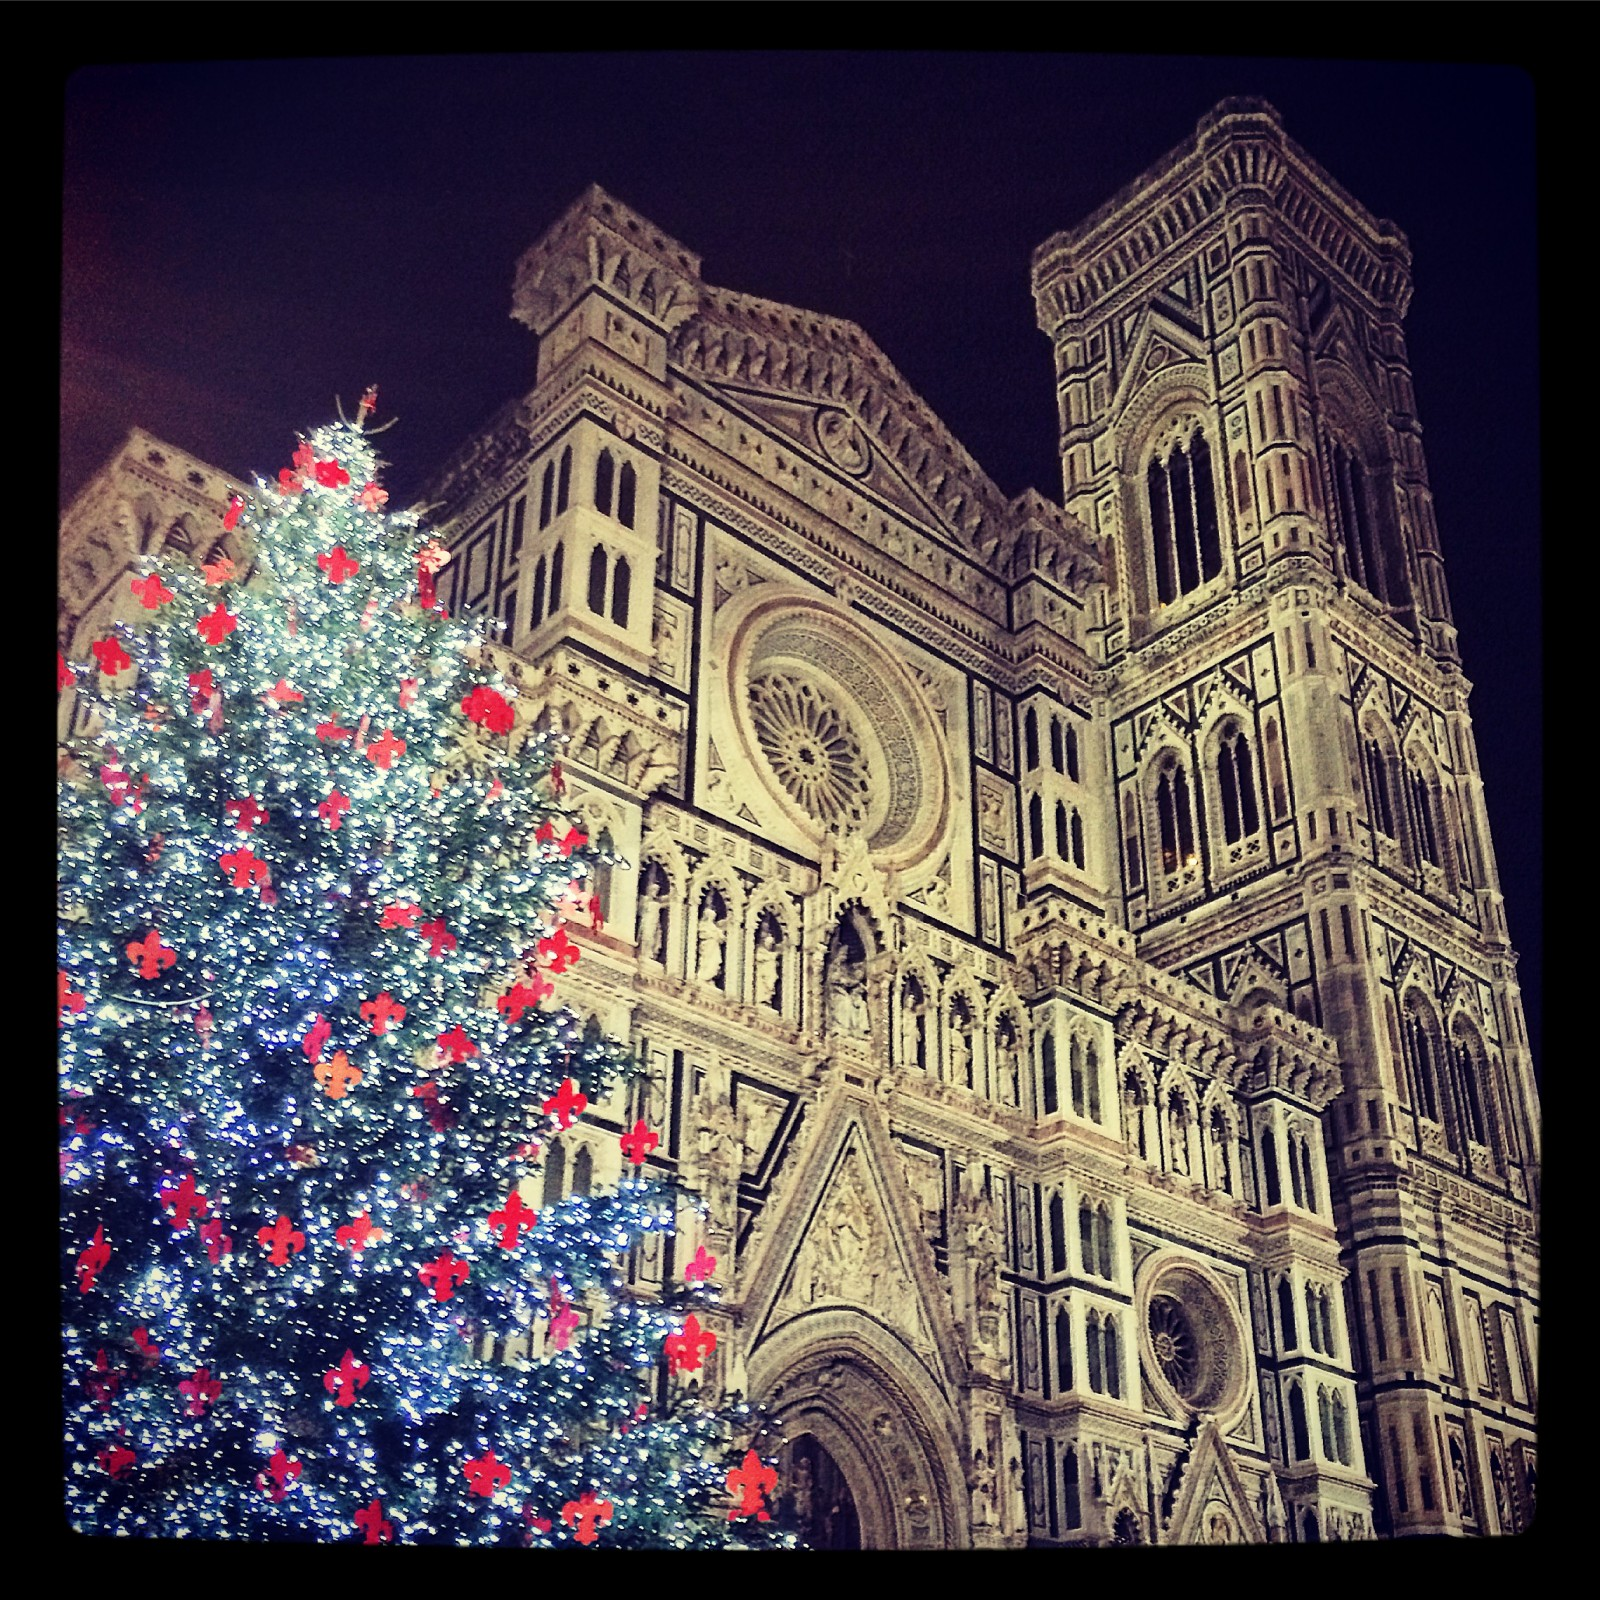 Florence at Christmas time [Photo Credits: Serena Puosi - Tuscany Social Media Team]